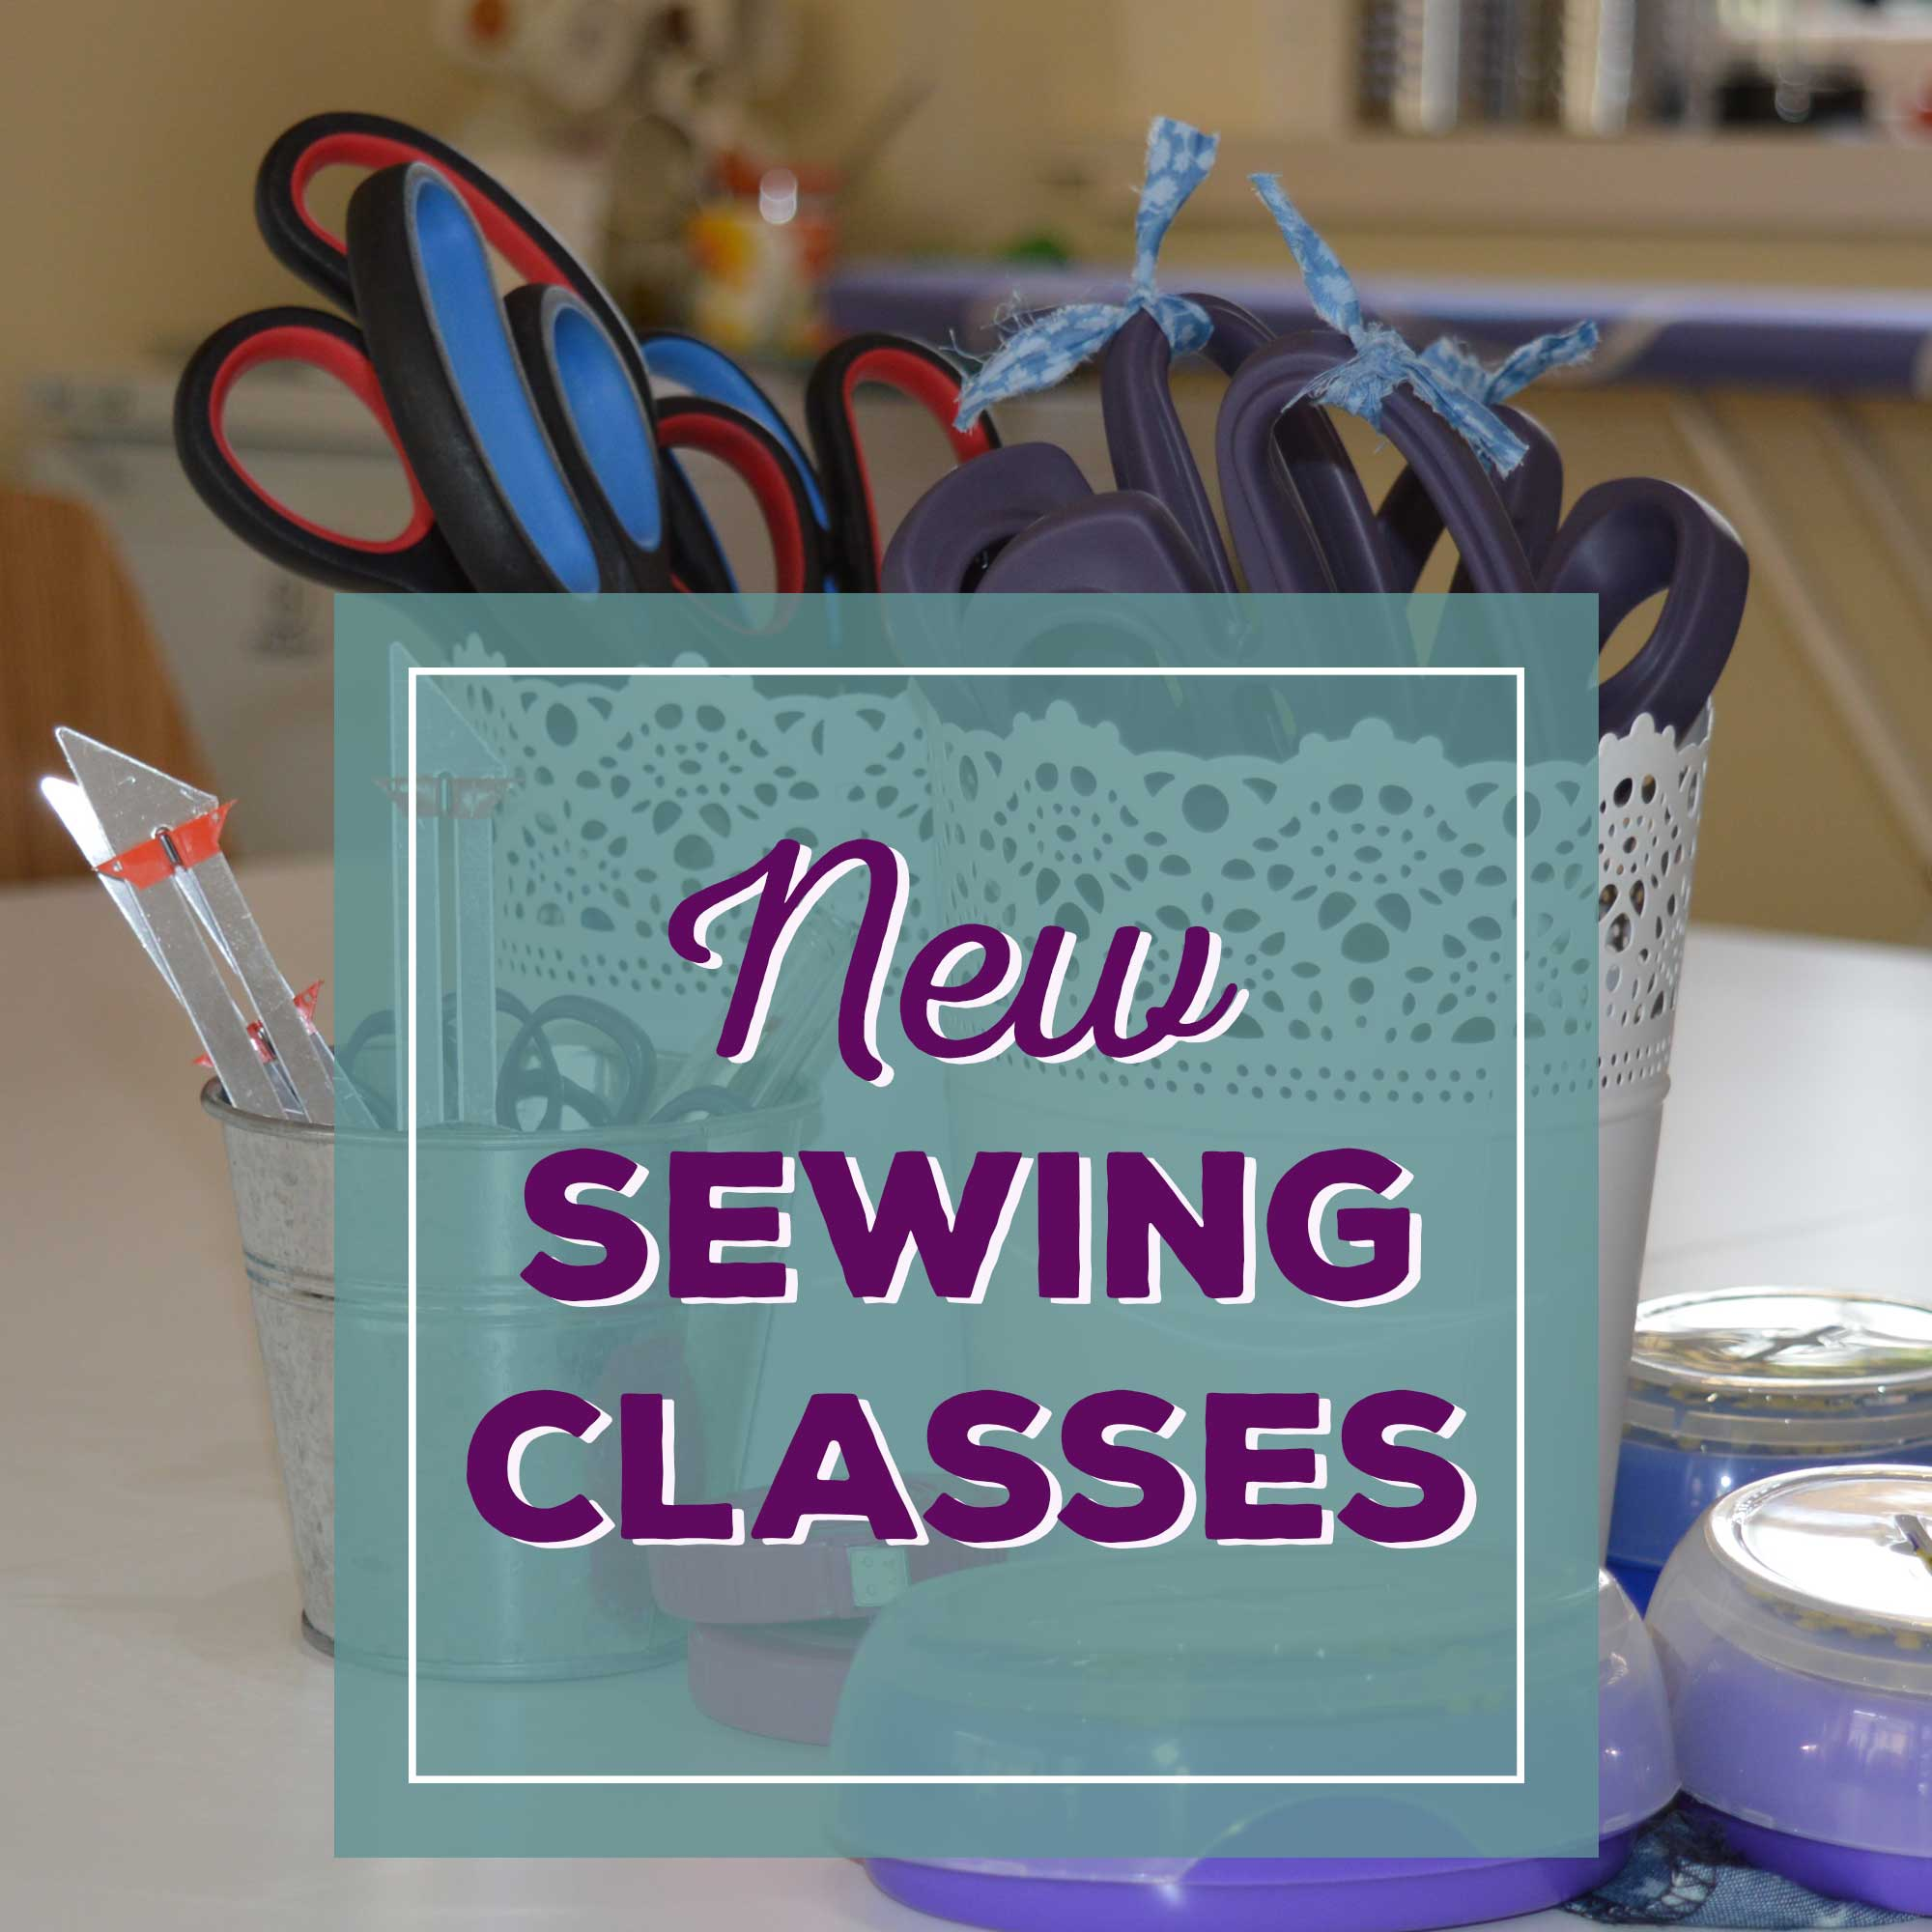 Holm Sown: New sewing classes for 2017 // dressmaking, patchwork & quilting, quilting, bag making // beginner friendly